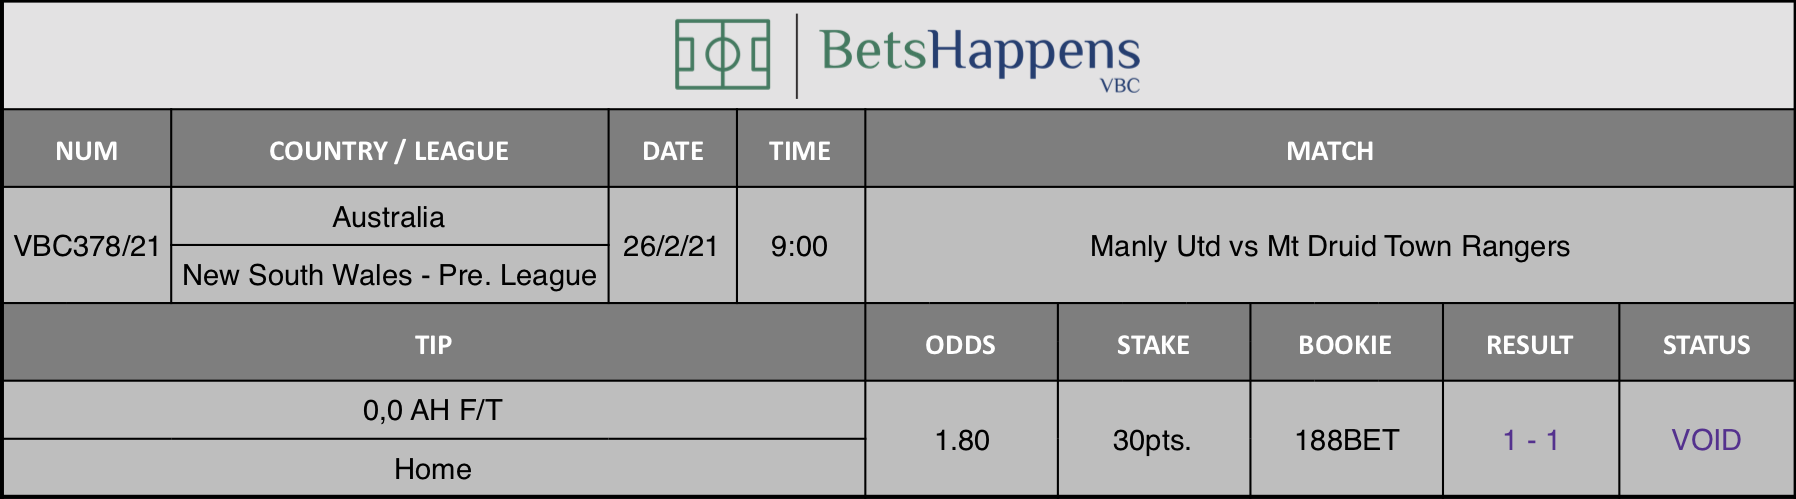 Results of our tip for the Manly Utd vs Mt Druid Town Rangers match where 0,0 AH F/T  Home is recommended.